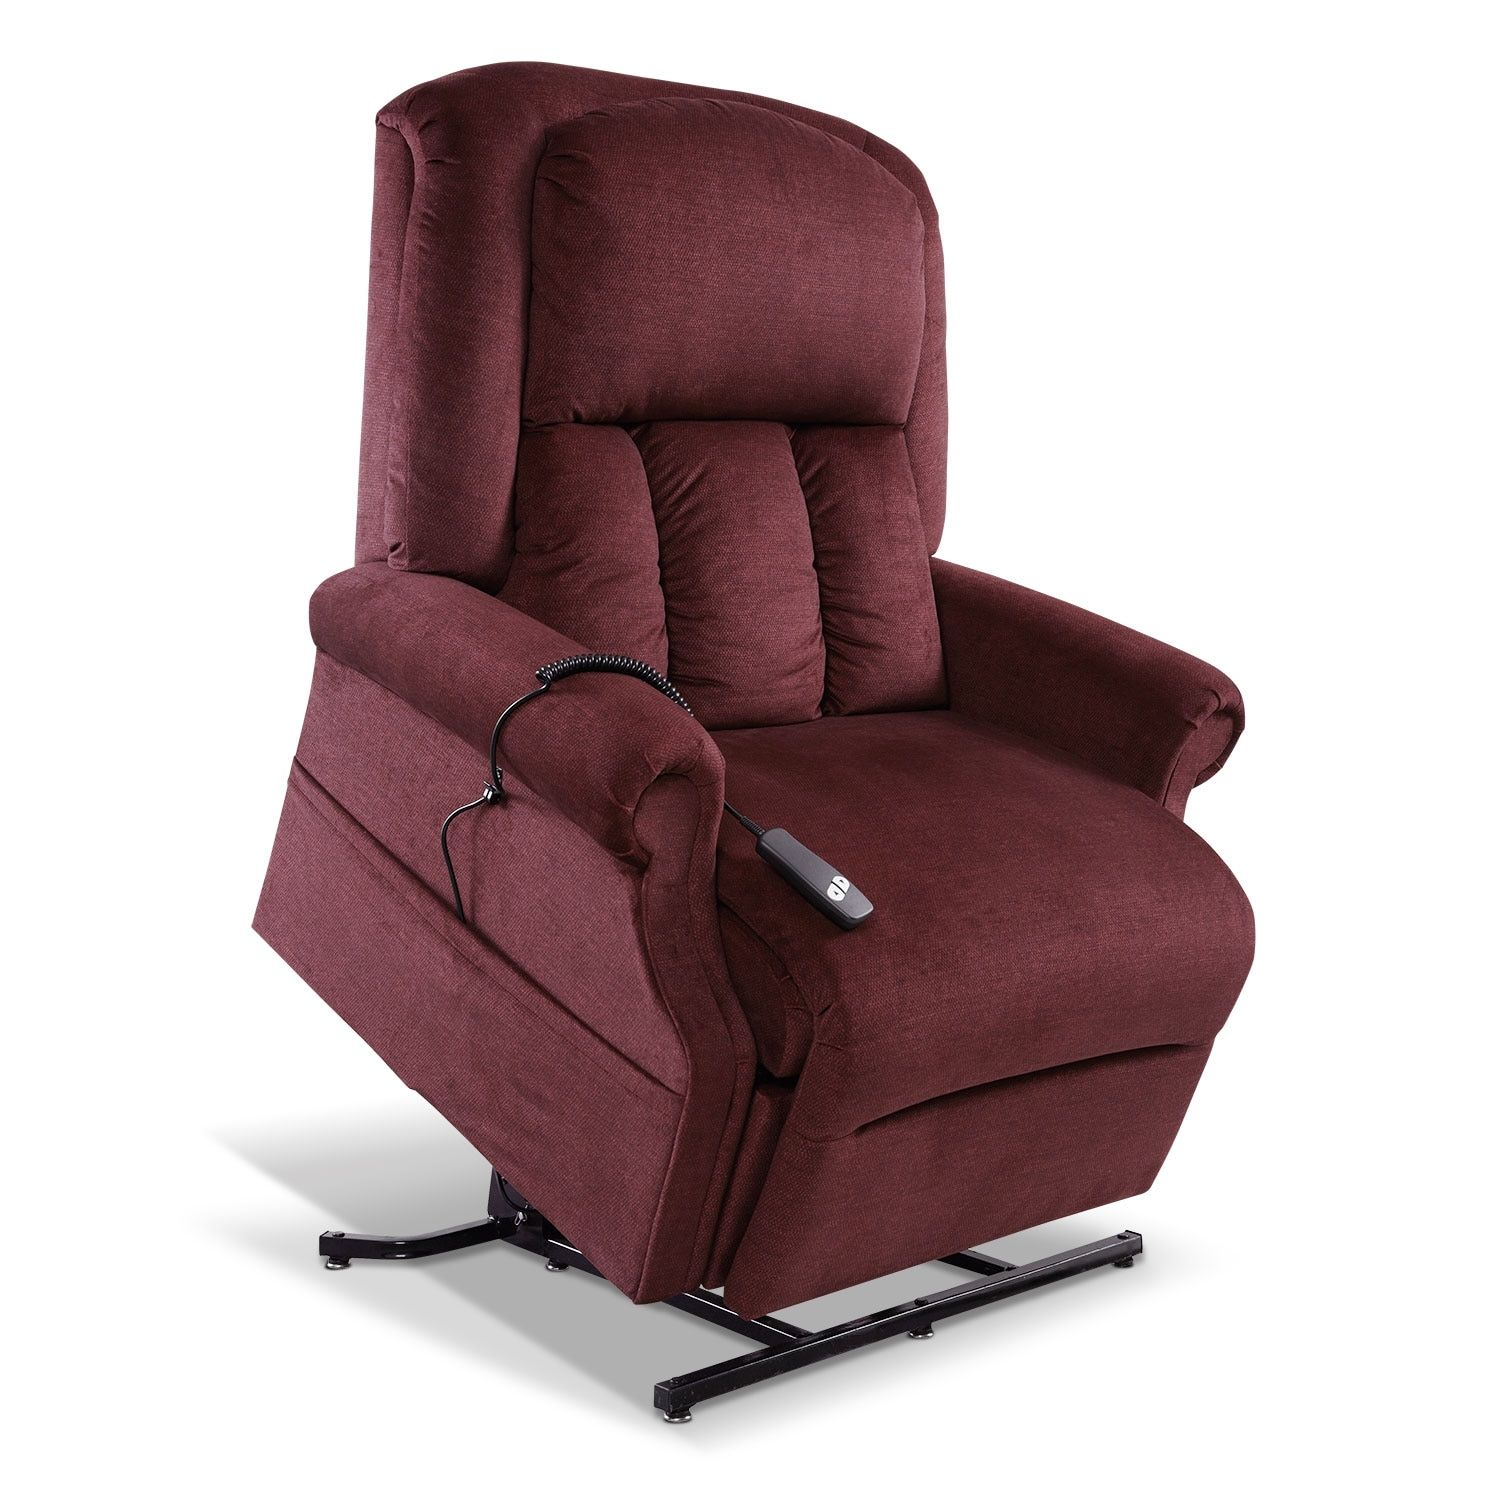 Carol Lift Chair Bordeaux Lift Chairs Lift Chair Recliners